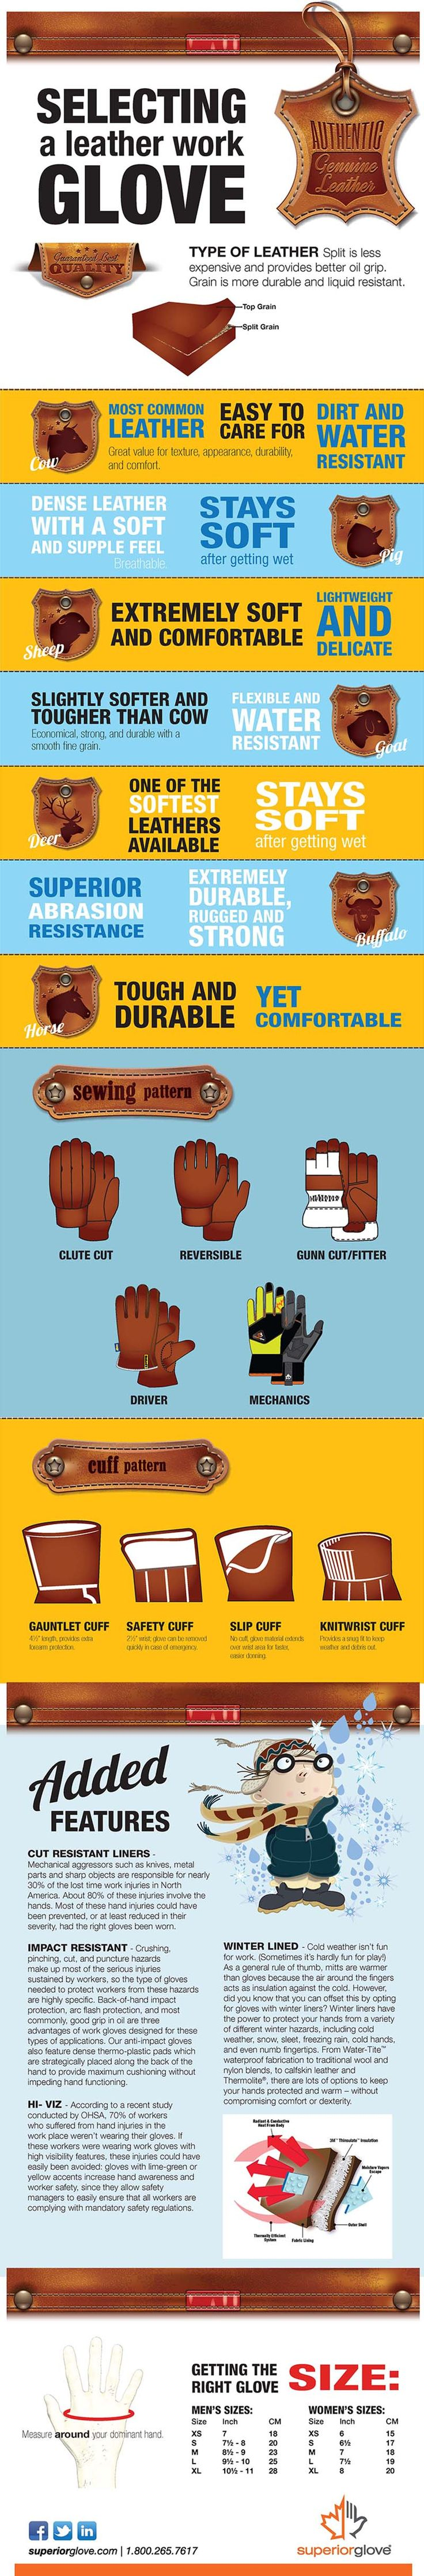 Leather work gloves best price - Guide To Selecting A Leather Work Glove